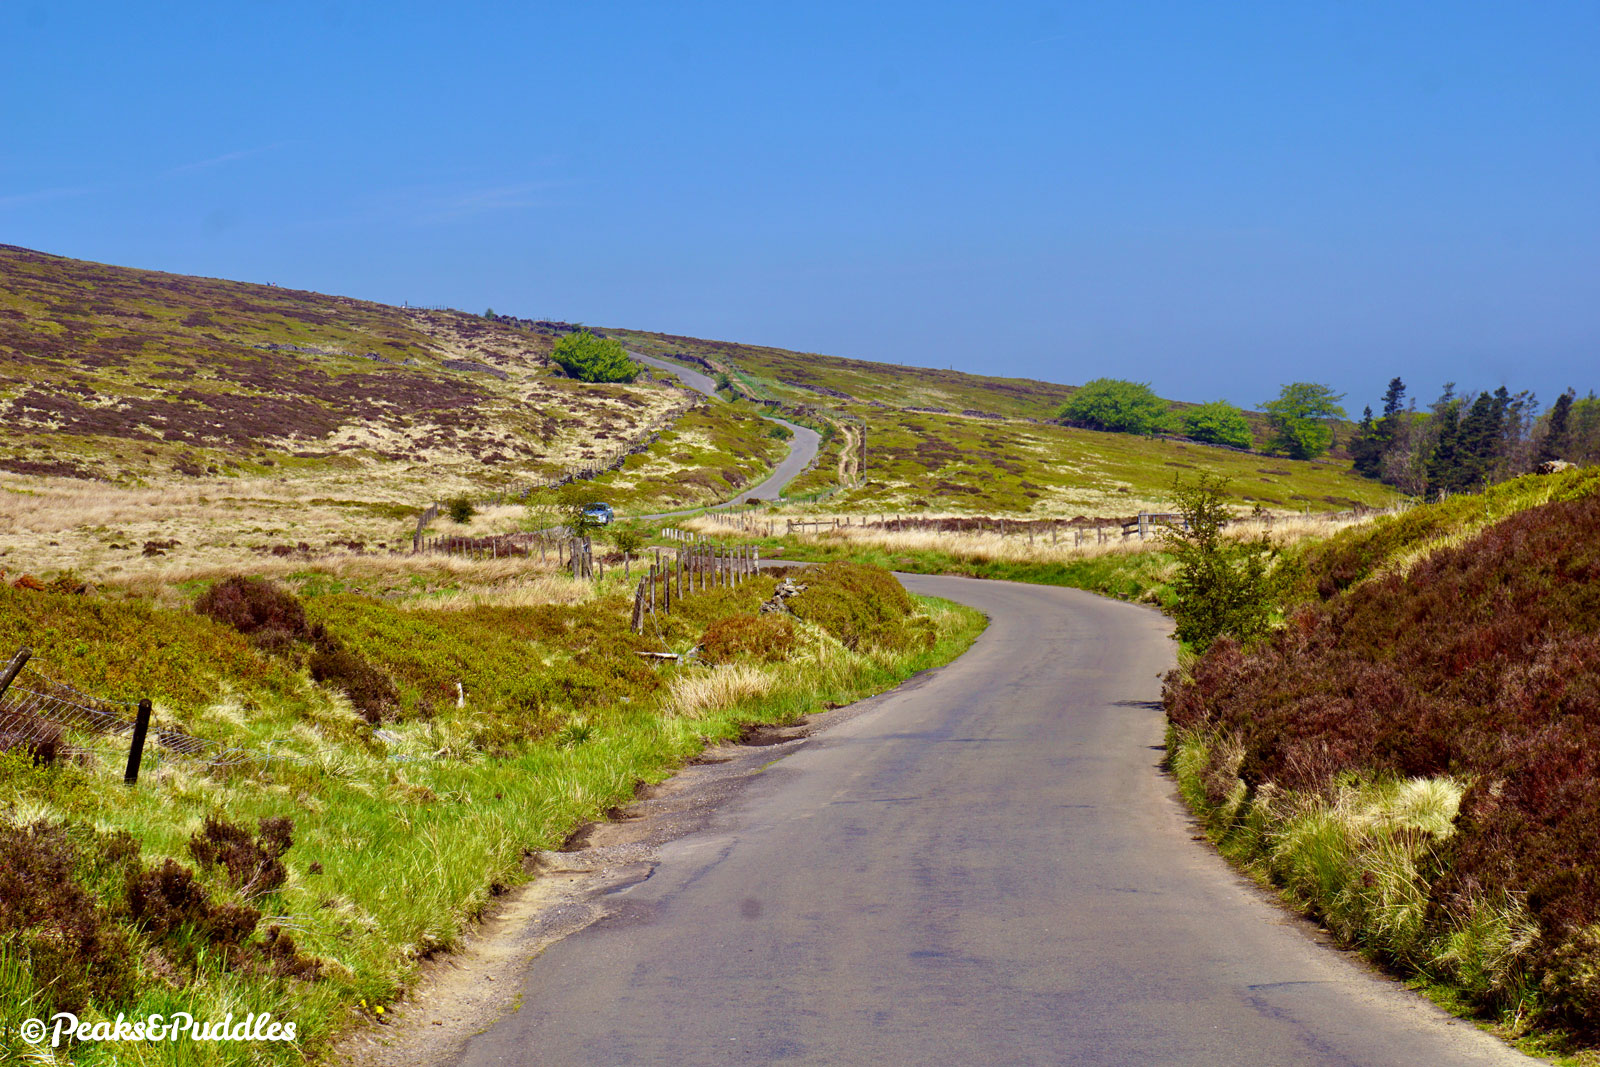 Nearing the top of The Street, Embridge Causeway crosses the open moors towards the summit of Pym Chair.